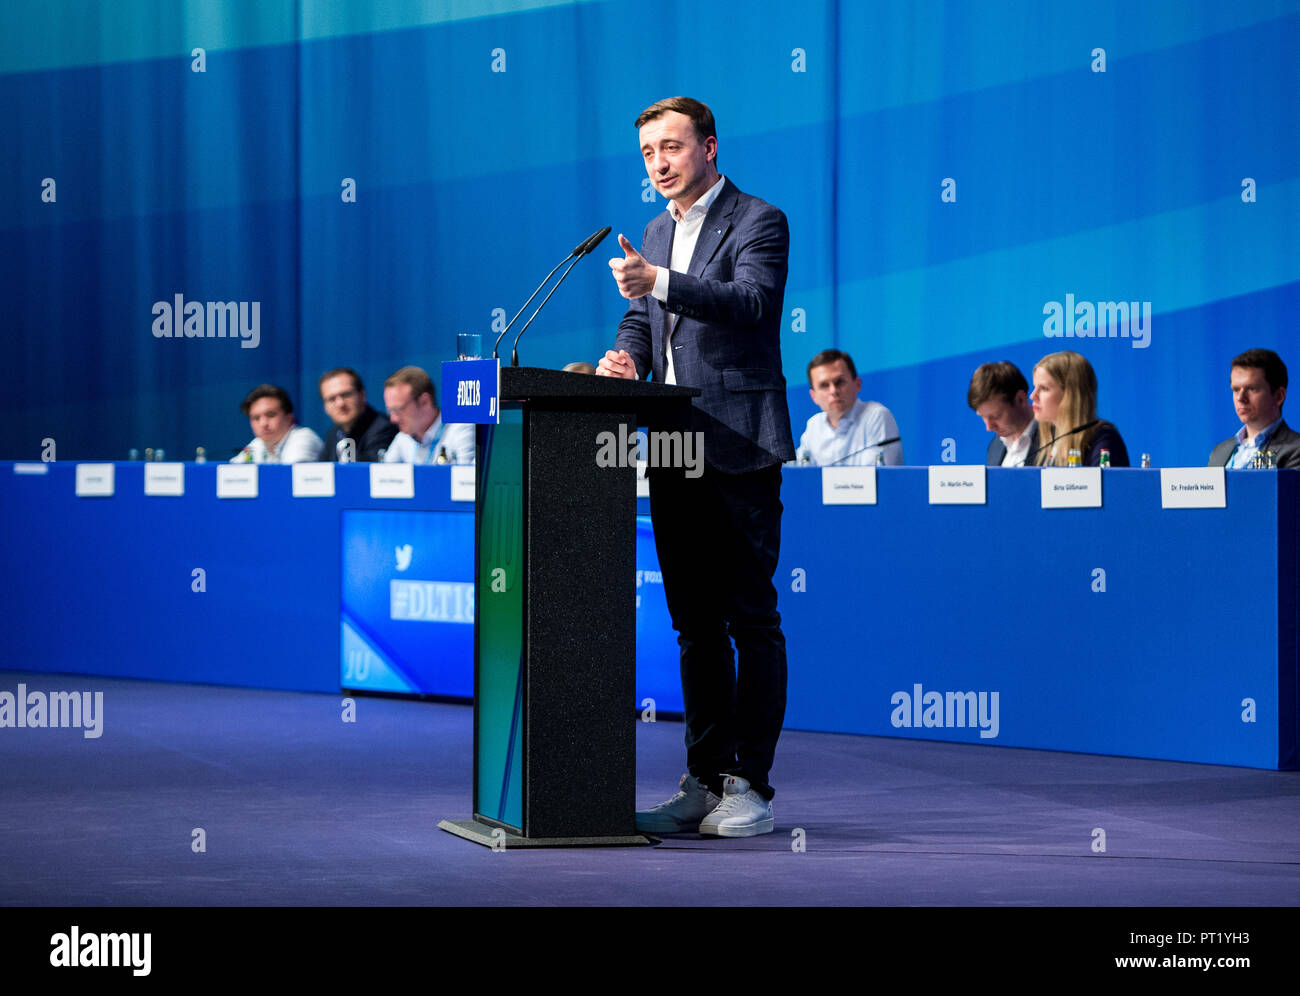 05 October 2018, Schleswig-Holstein, Kiel: Paul Ziemiak, Federal Chairman of the Junge Union Deutschland (JU), speaking during the Germany Day of the Junge Union (JU). Around 1000 delegates and guests met at the meeting of the youth organisation to discuss how Germany can remain stable and economically successful in 2030. Photo: Daniel Bockwoldt/dpa Stock Photo